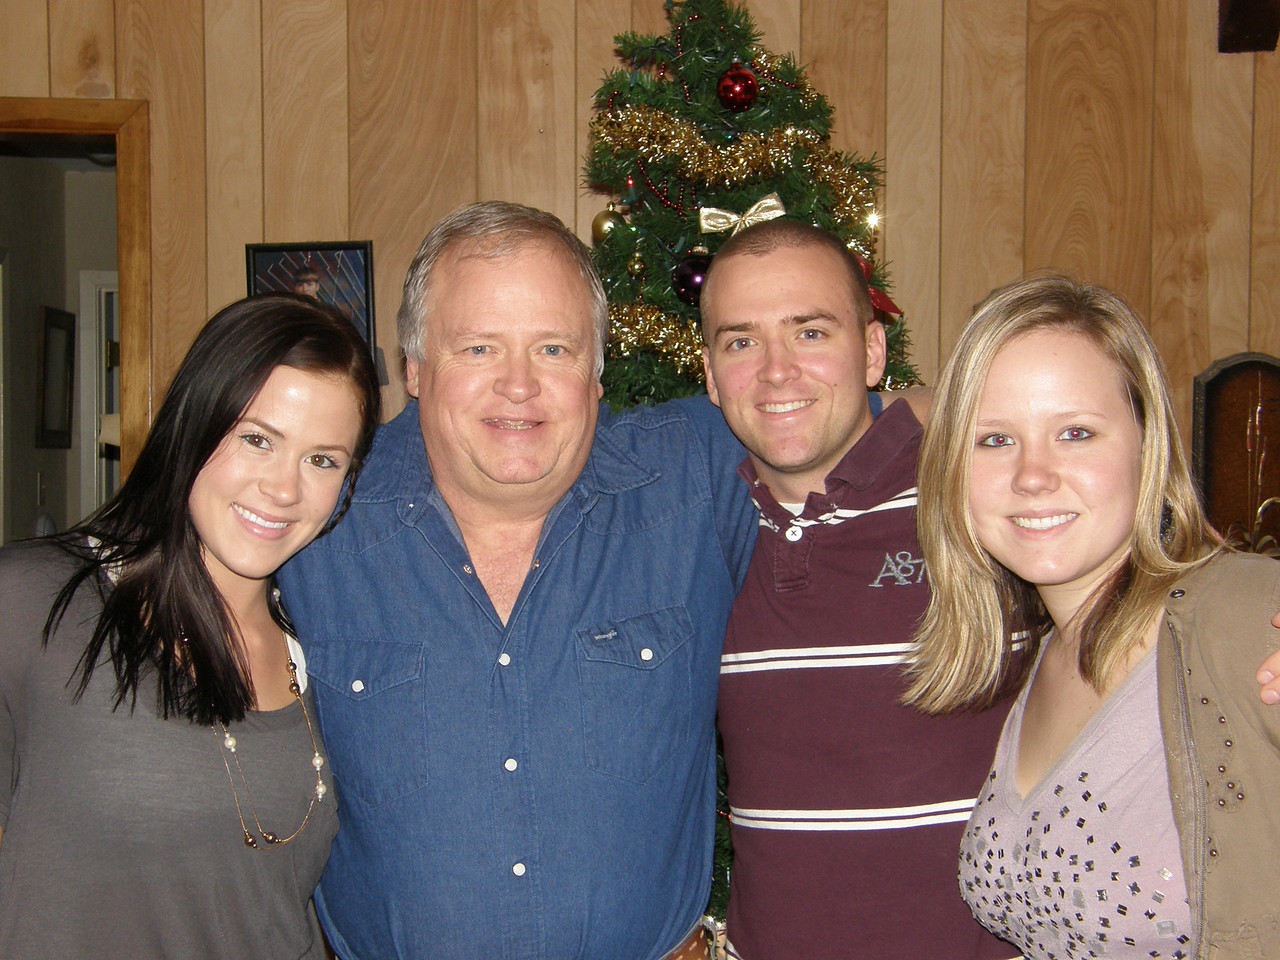 The Humphries Family all together!  Sarah, Dad (Ronnie), Luke, and Katie.  Merry Christmas!